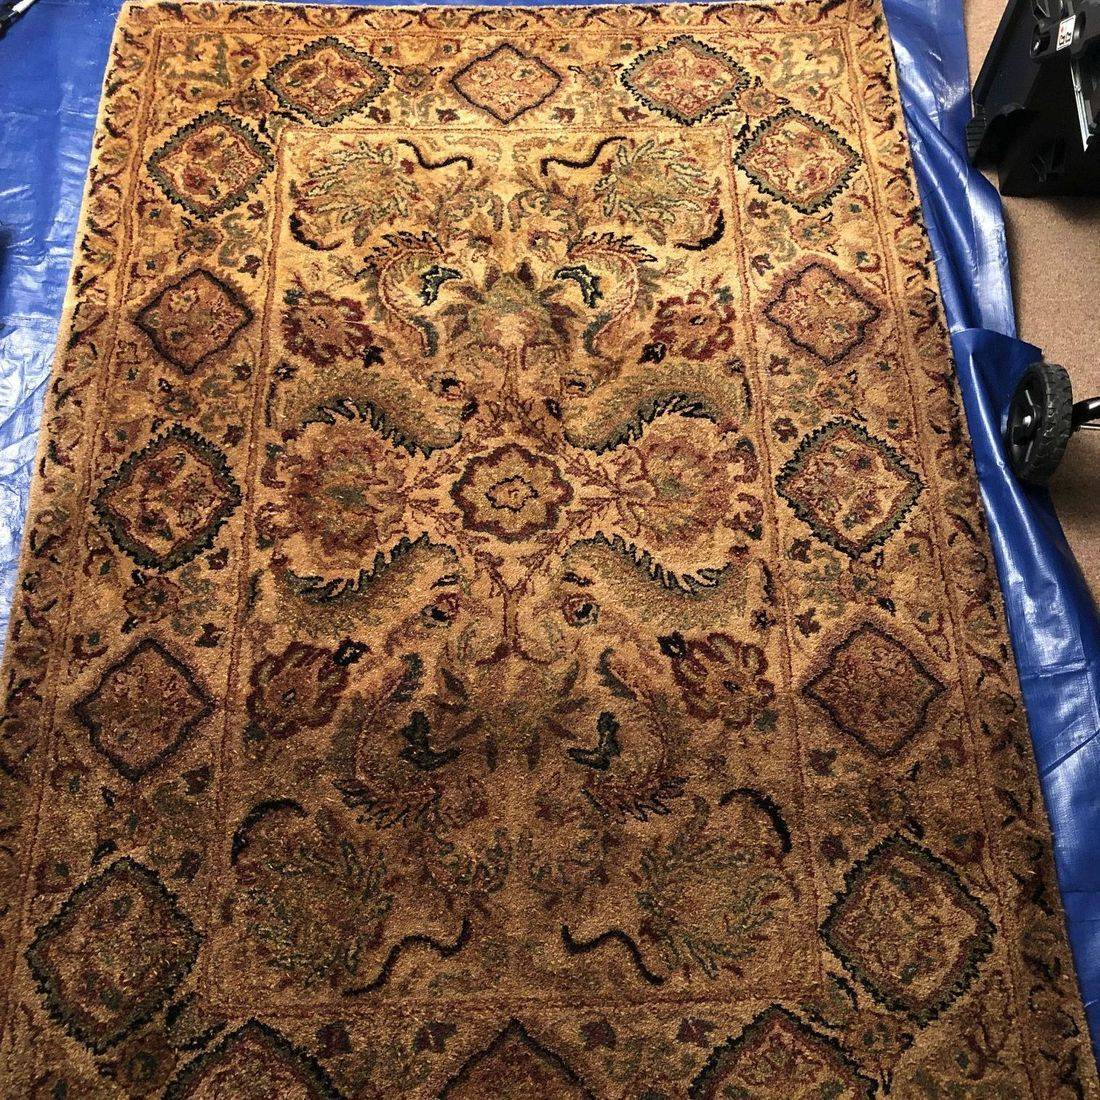 Custom Colour Carpets & Rugs, Carpet Dyeing,  Tea Washing, Over Dyeing, Tinting